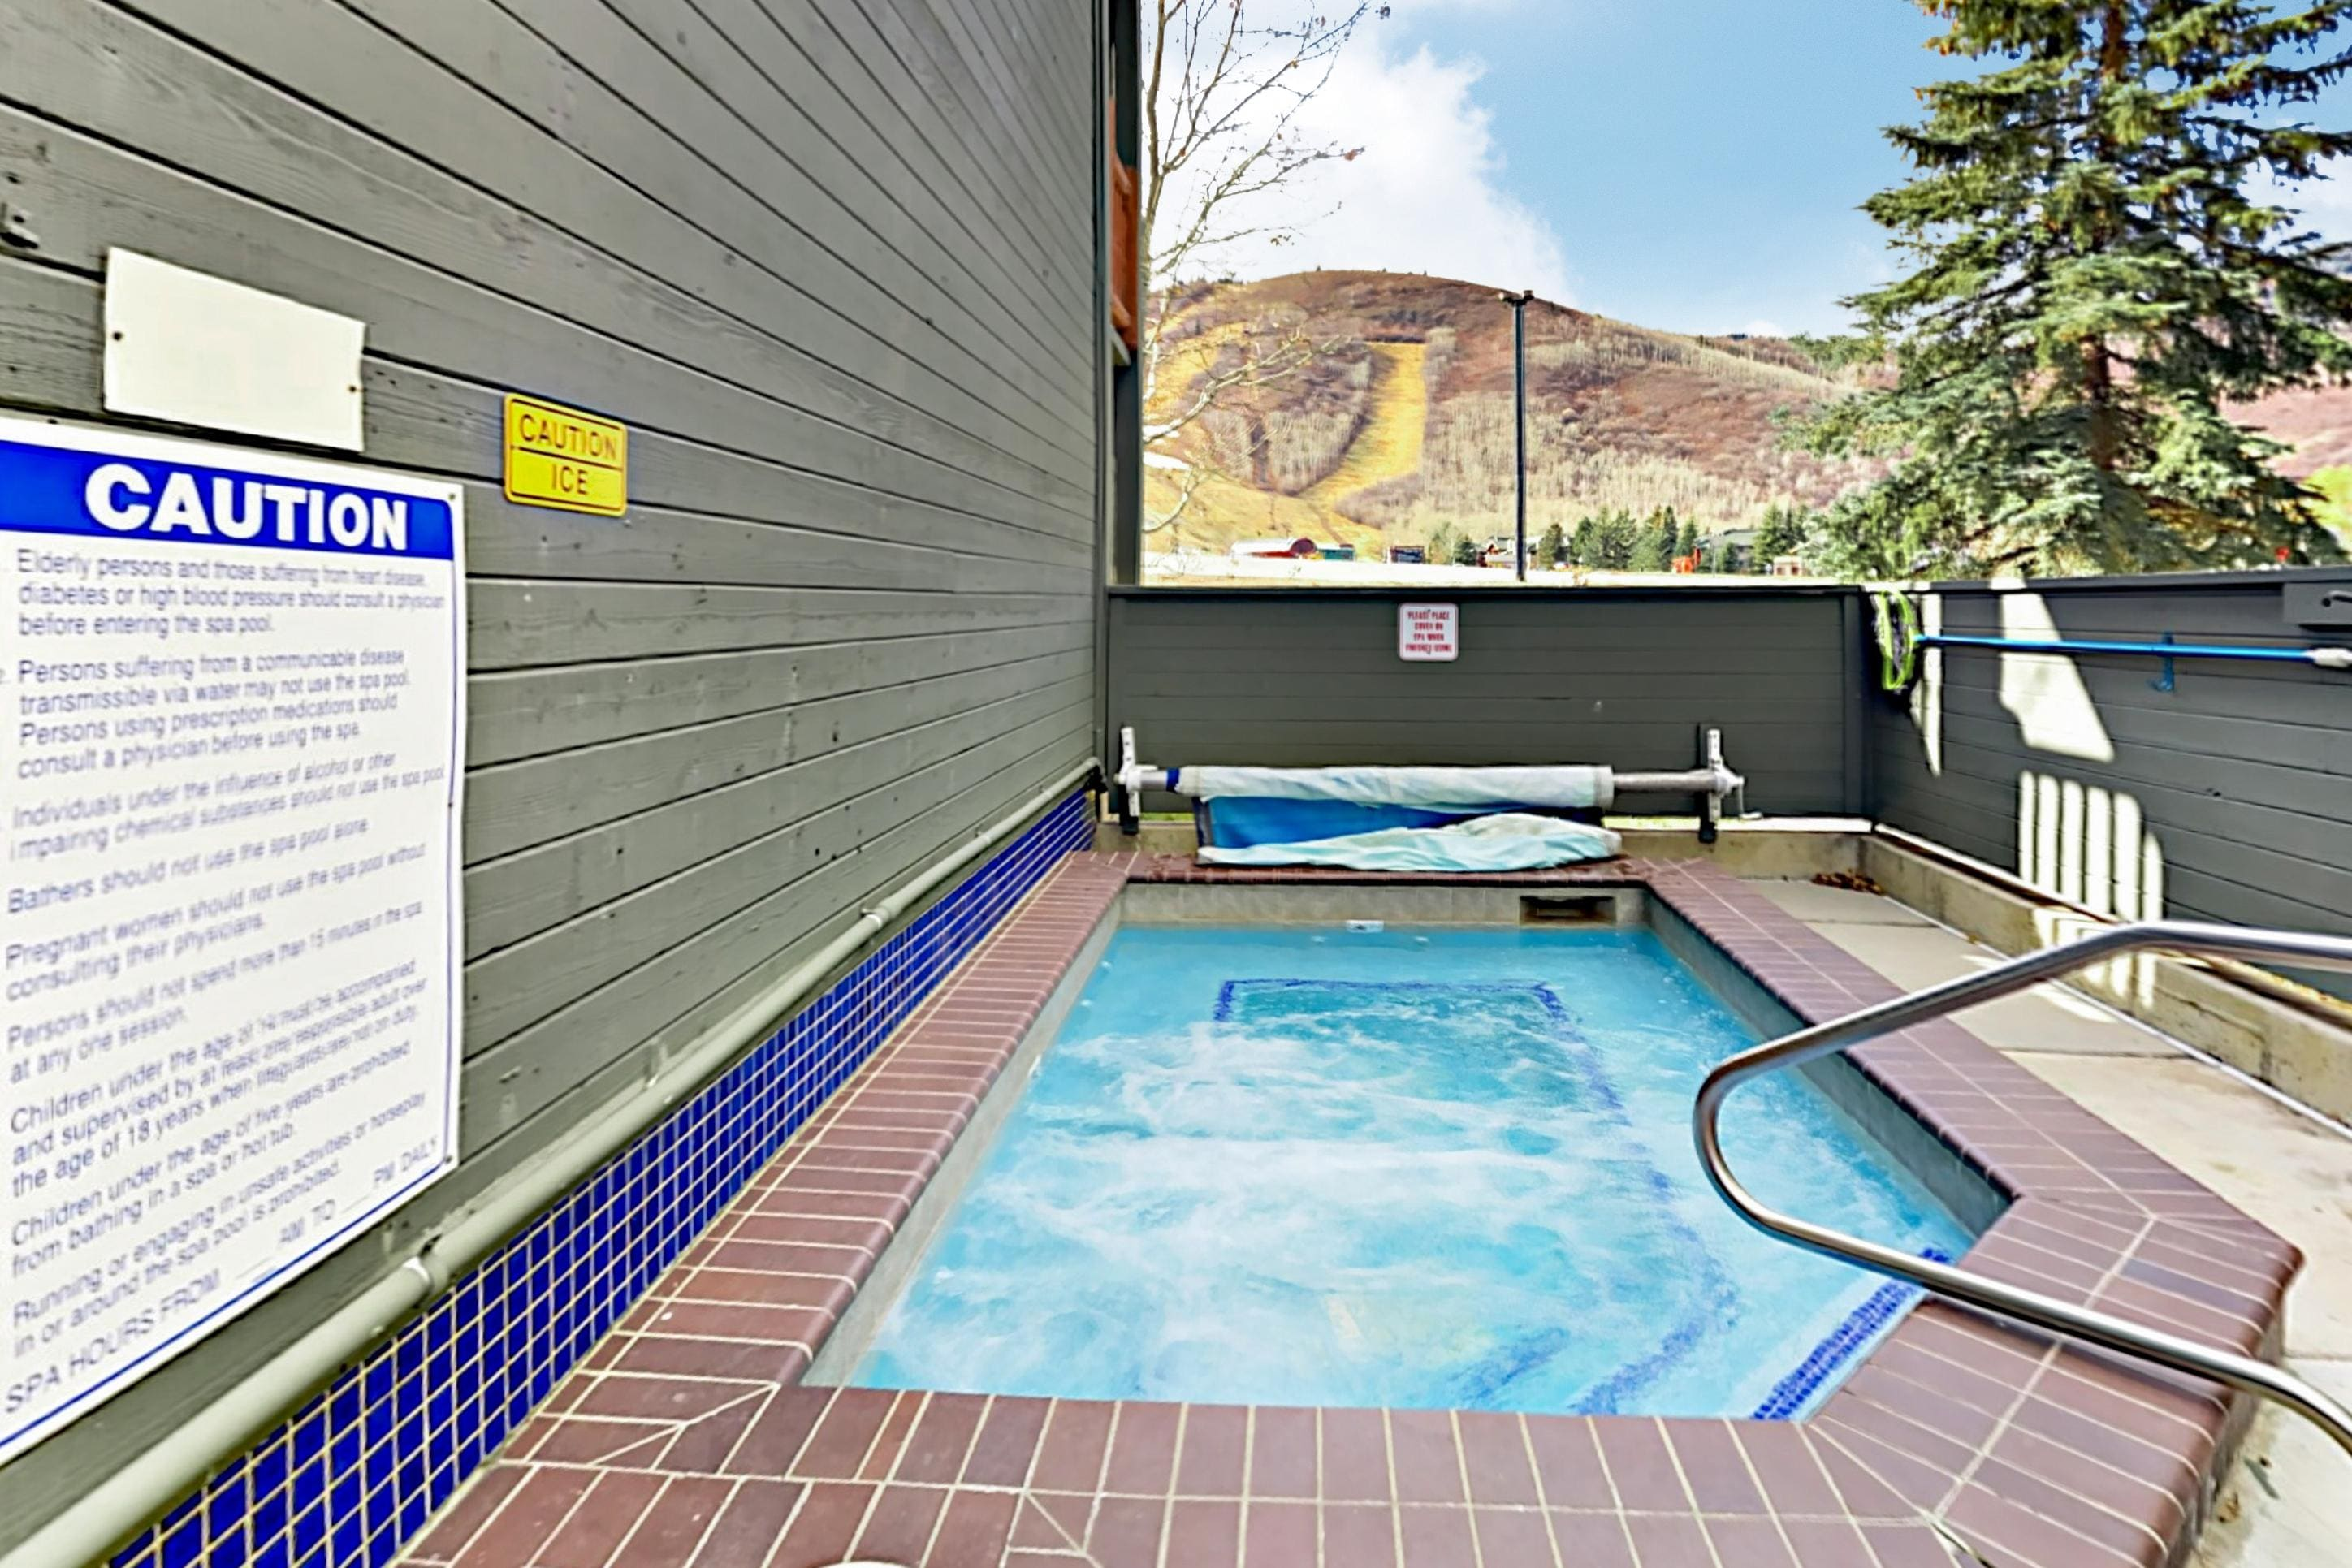 Relax in the bubbling hot tub with mountain views.